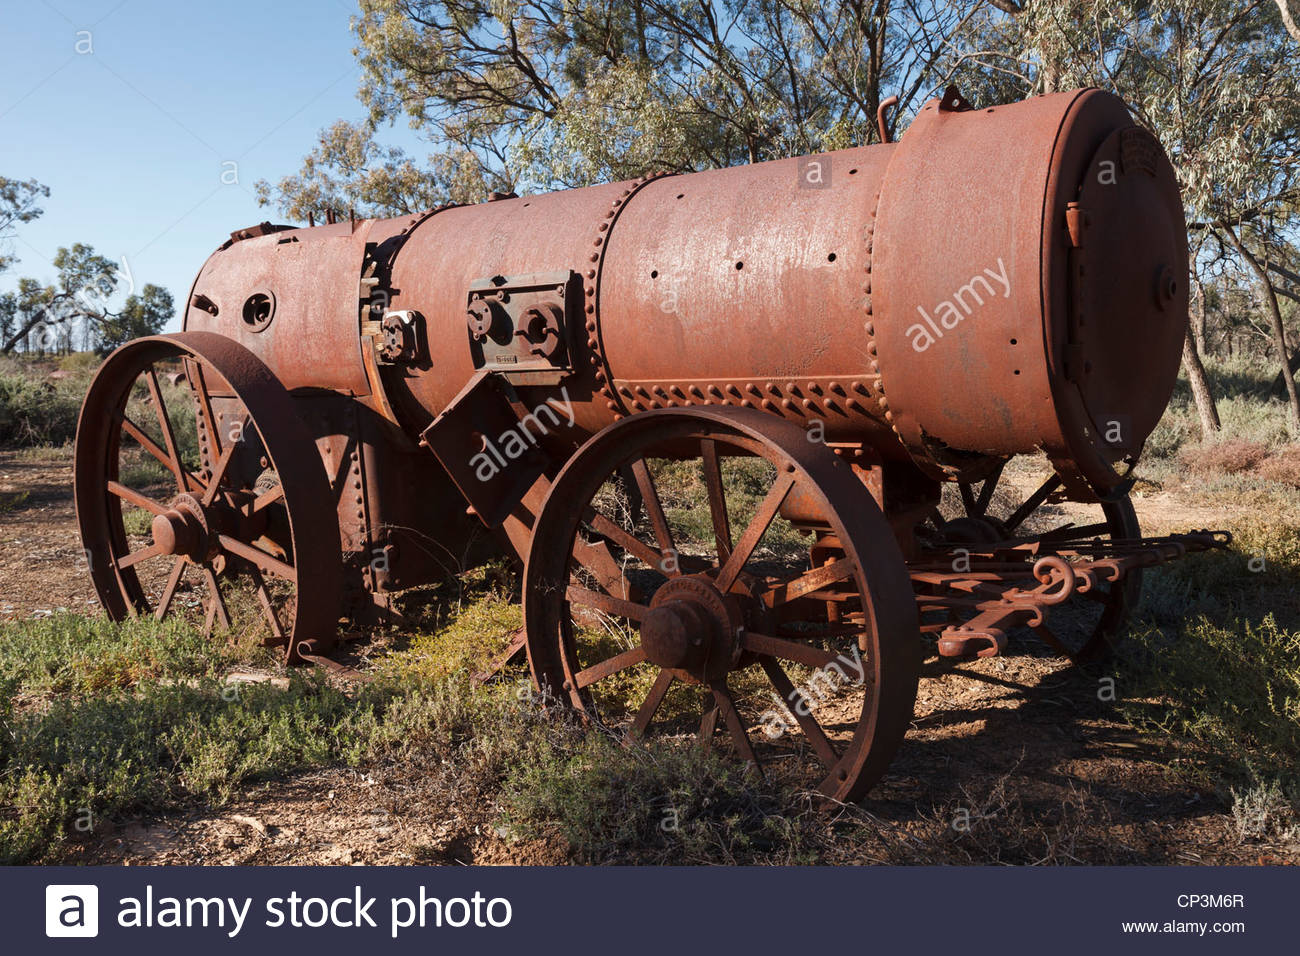 Very Old Steam Engine Stock Photos & Very Old Steam Engine